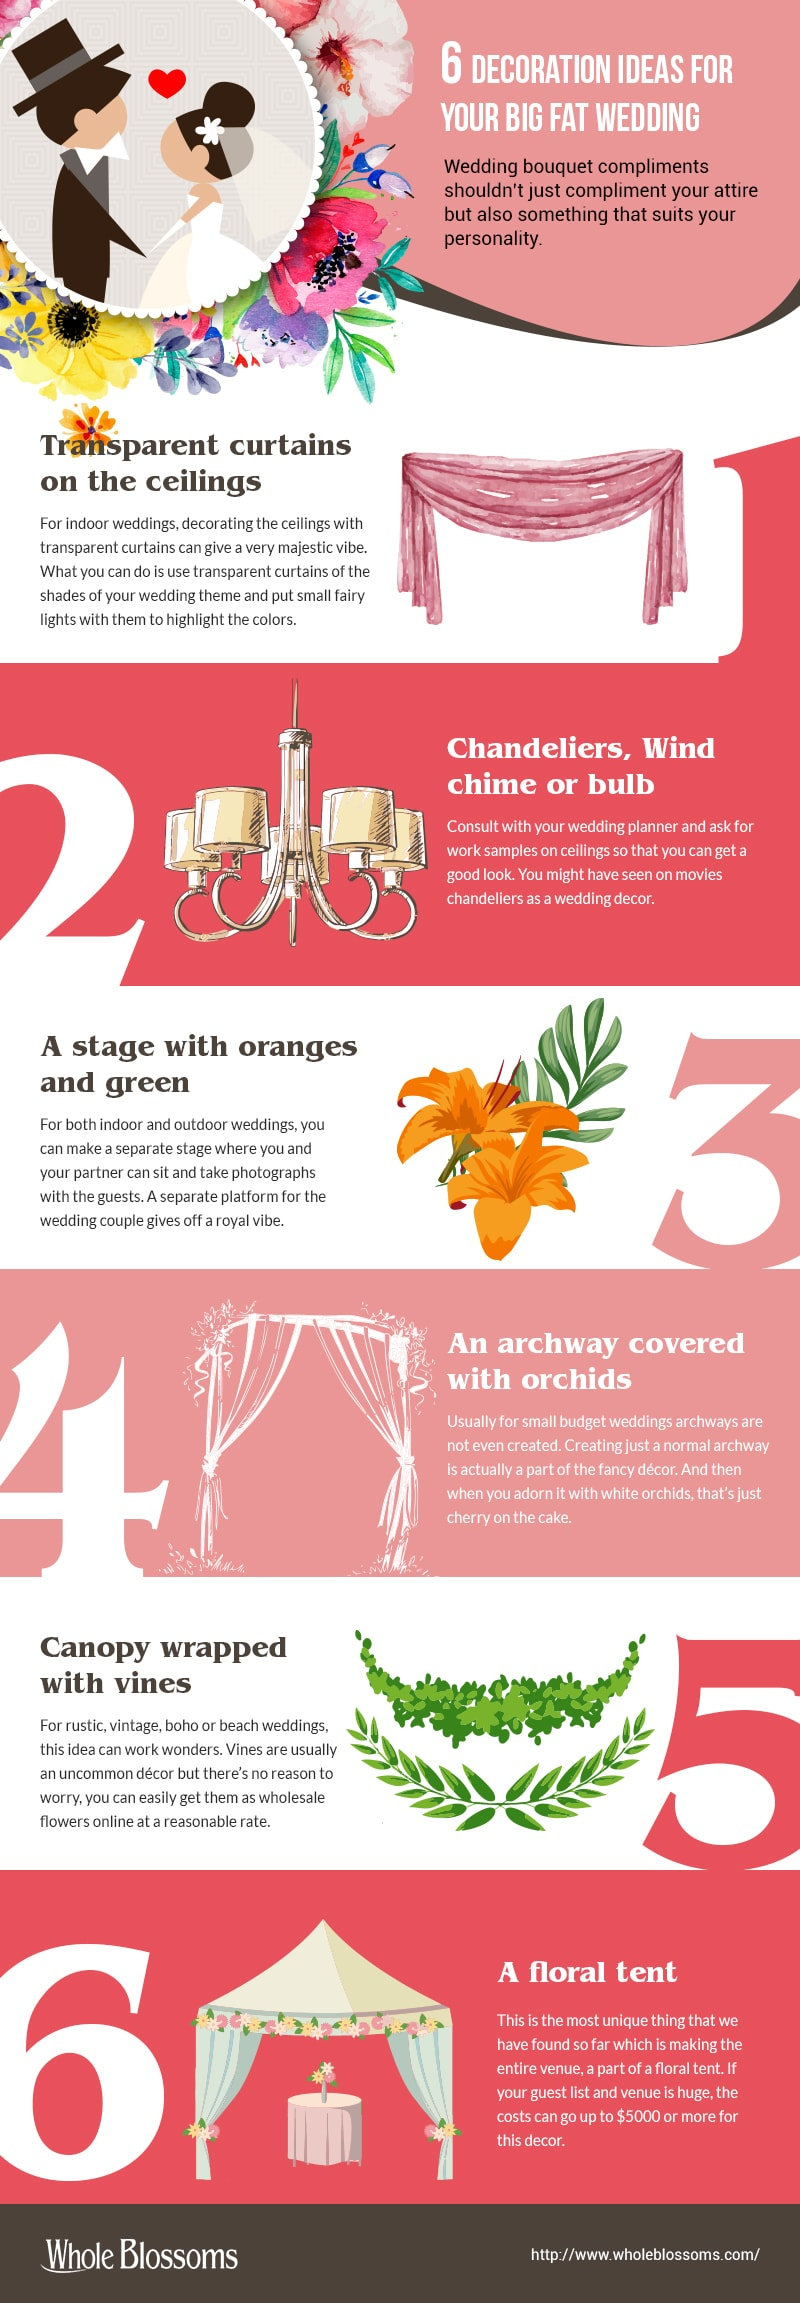 Decoration Ideas for your Big Fat Wedding